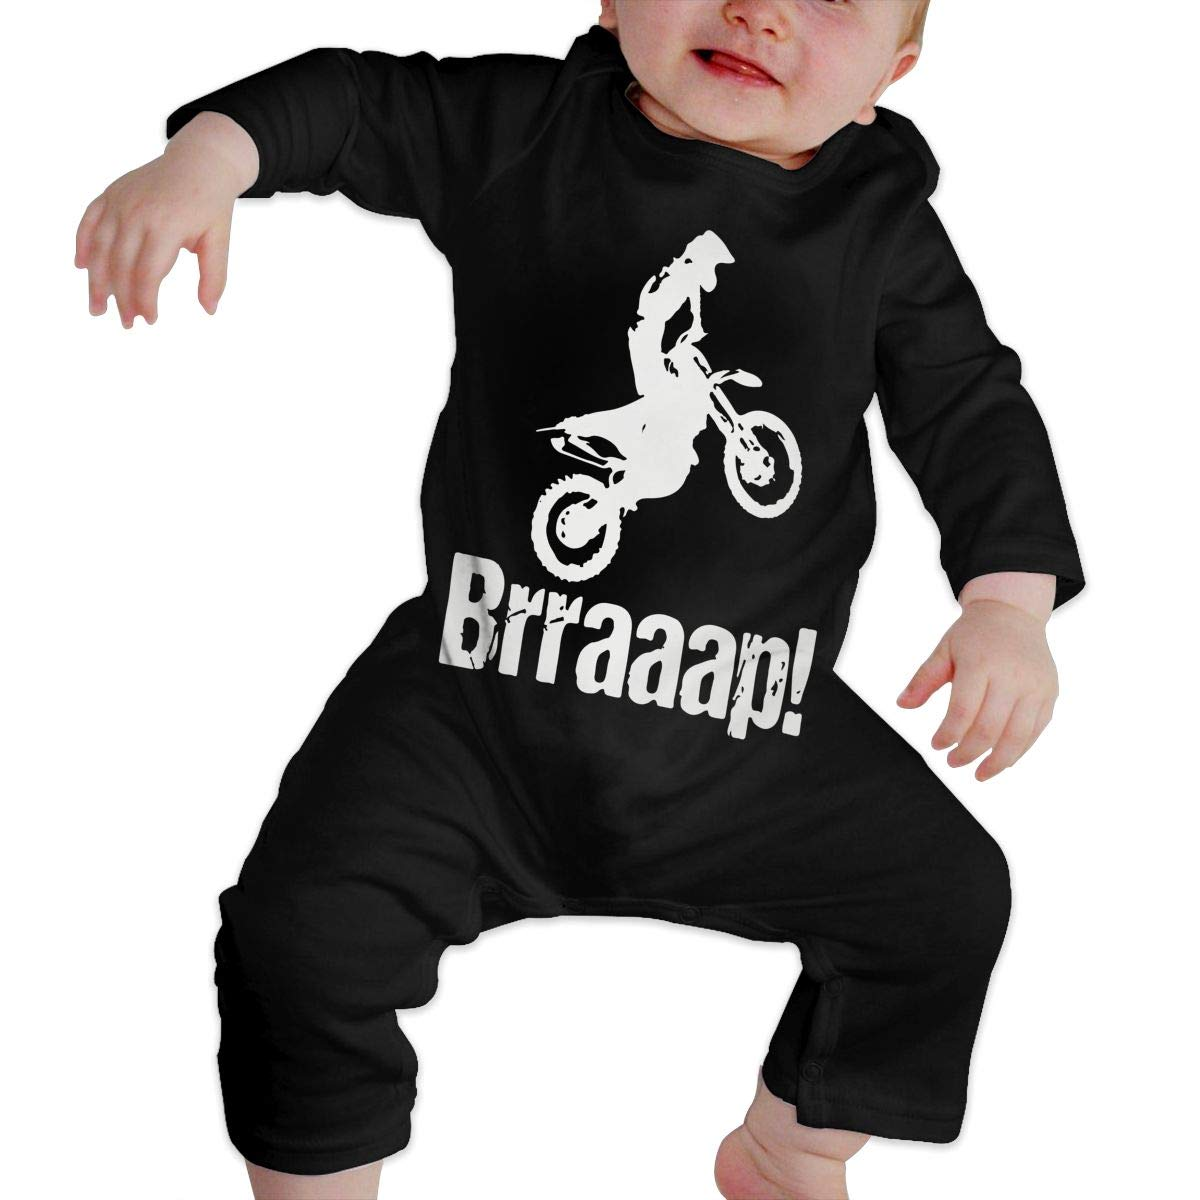 Suit 6-24 Months XHAKZM71 Toddler Round Collar Brraaap Dirt Bike Motocross Long Sleeve Pajamas Sleepwear 100/% Cotton